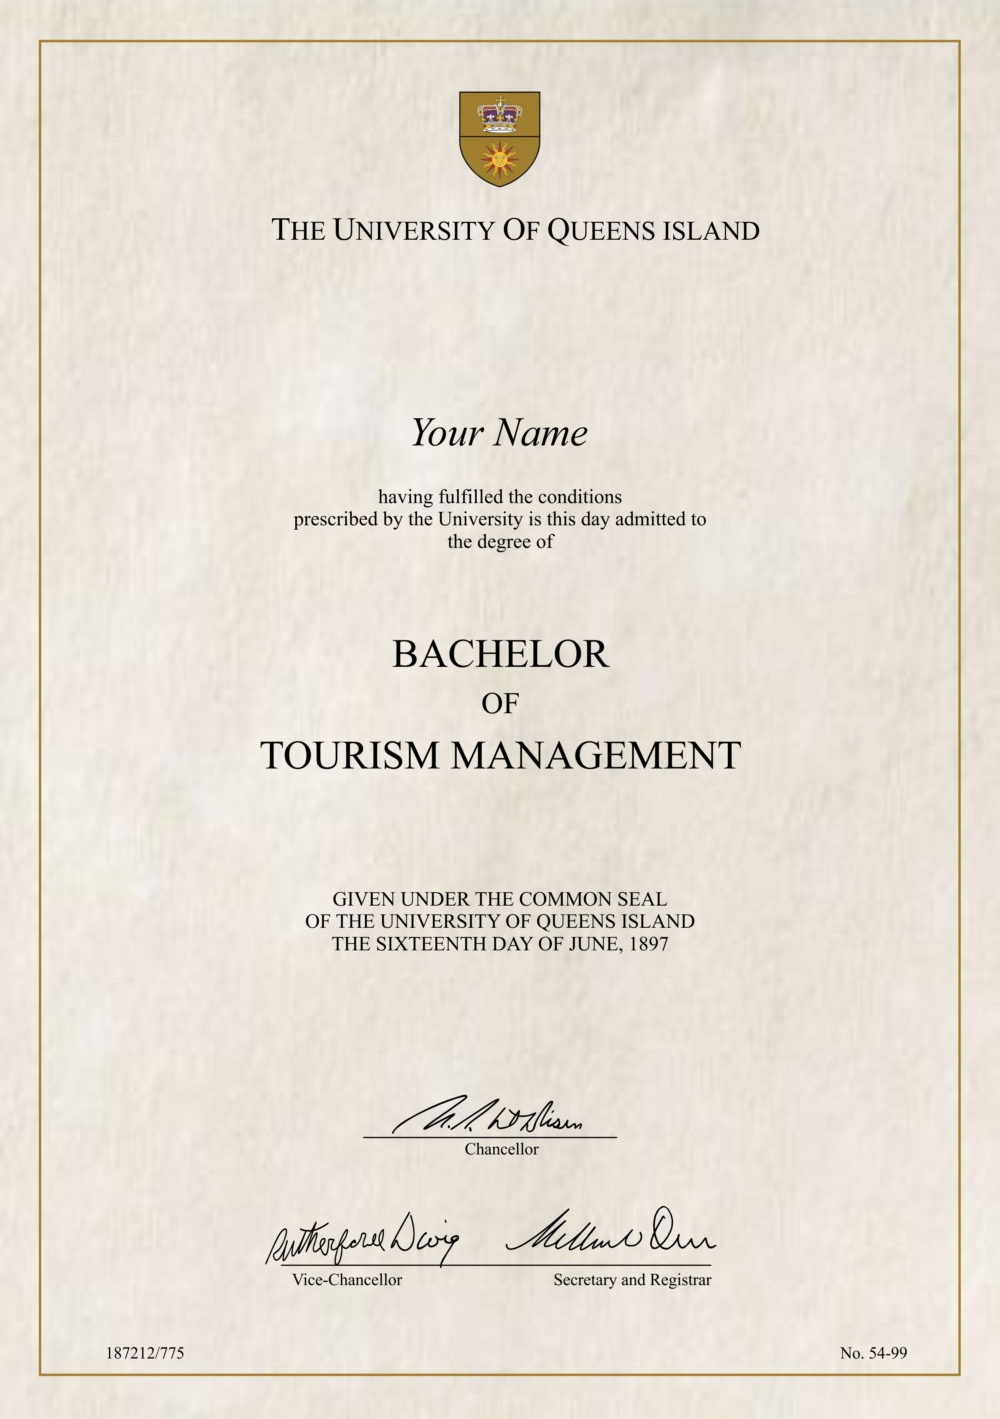 Fake Tourism & Hospitality Certificate - Diploma Outlet